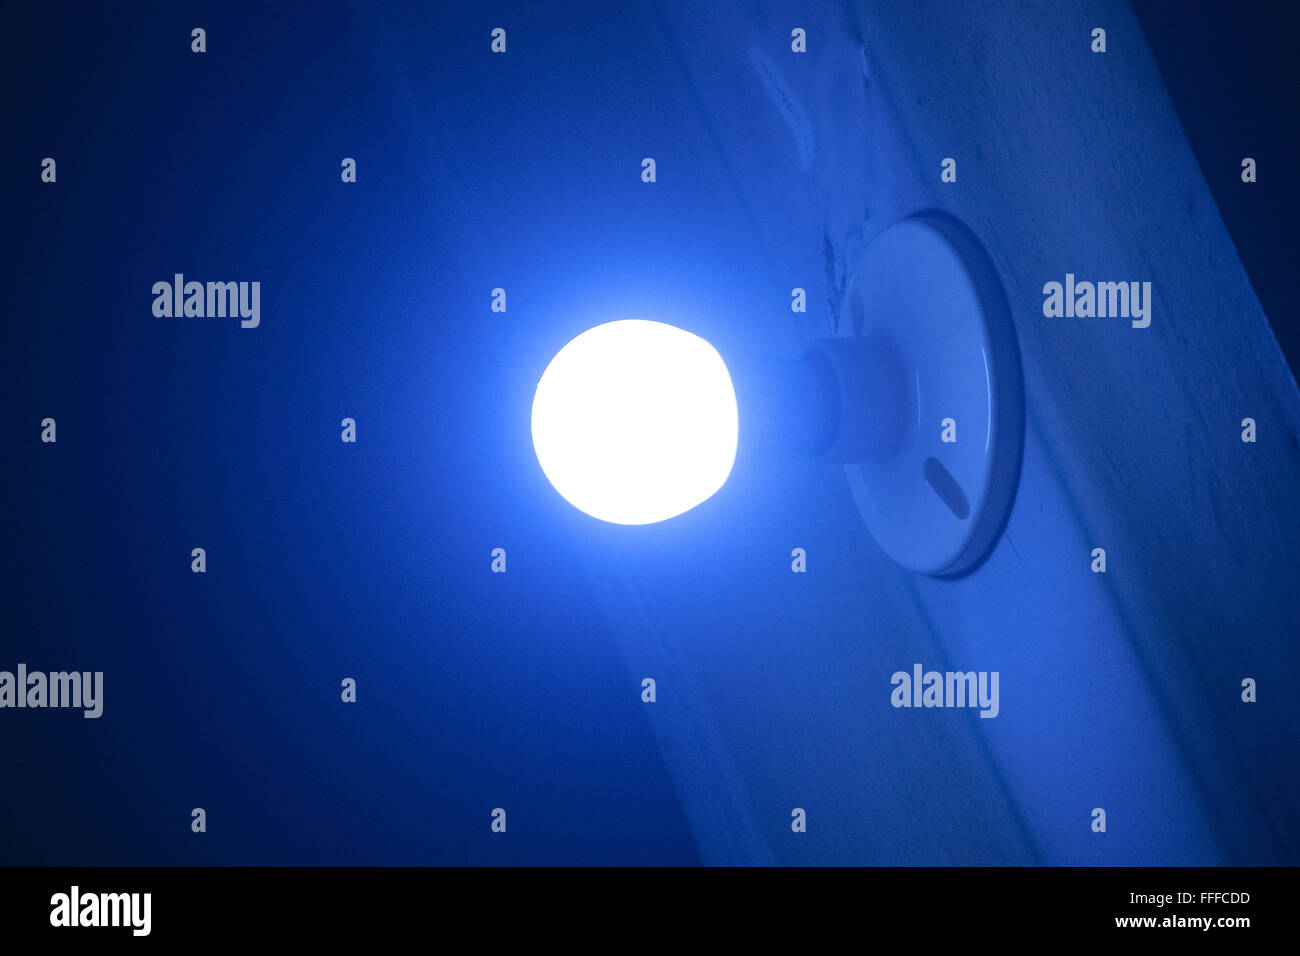 Blue light which resembles a good idea - Stock Image